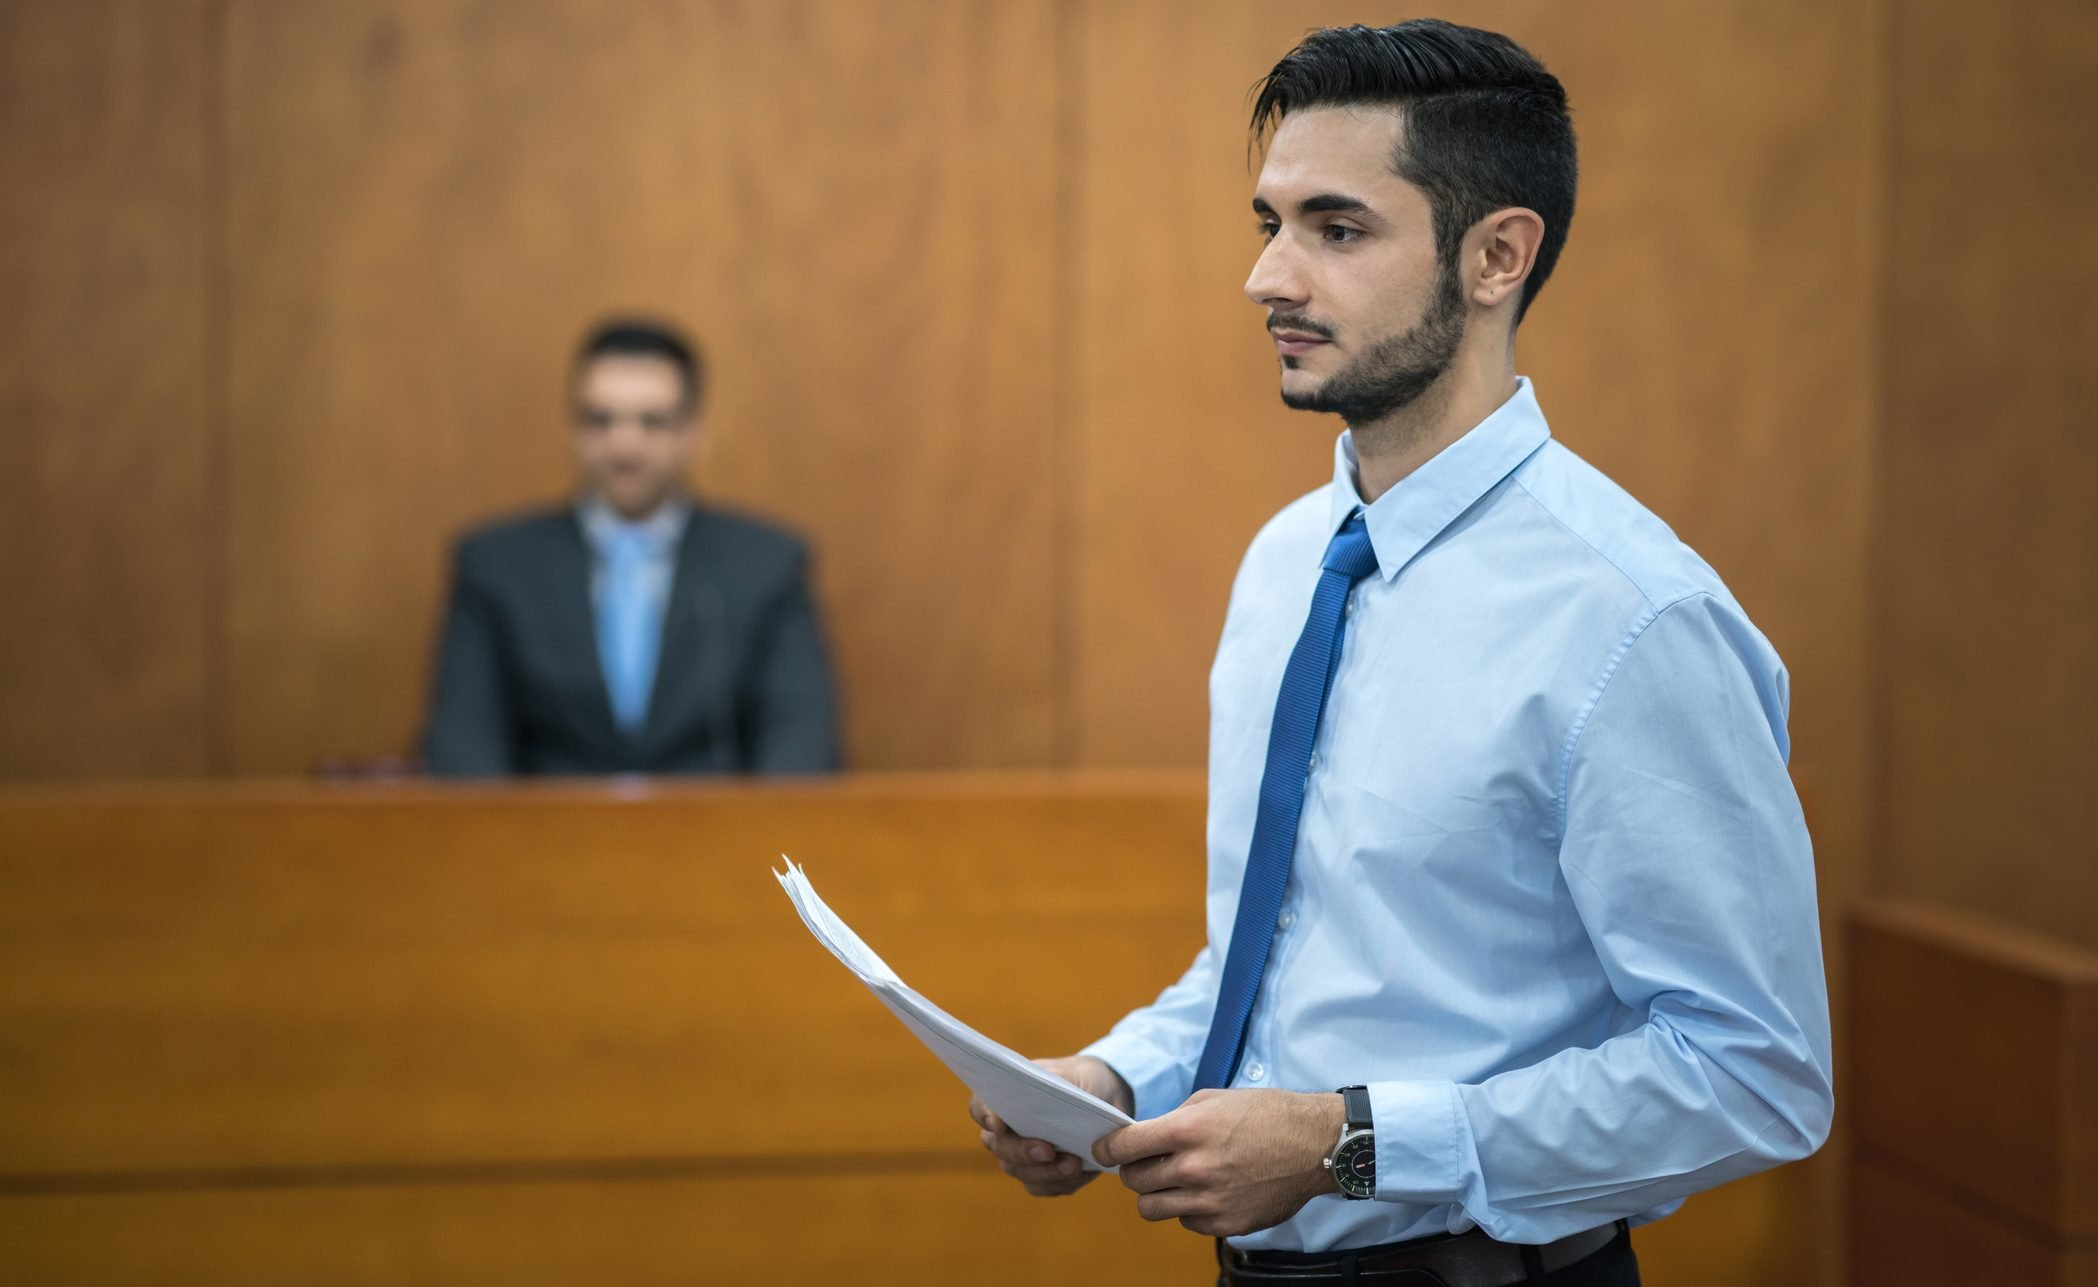 Hiring A Criminal Defense Lawyer Versus A General